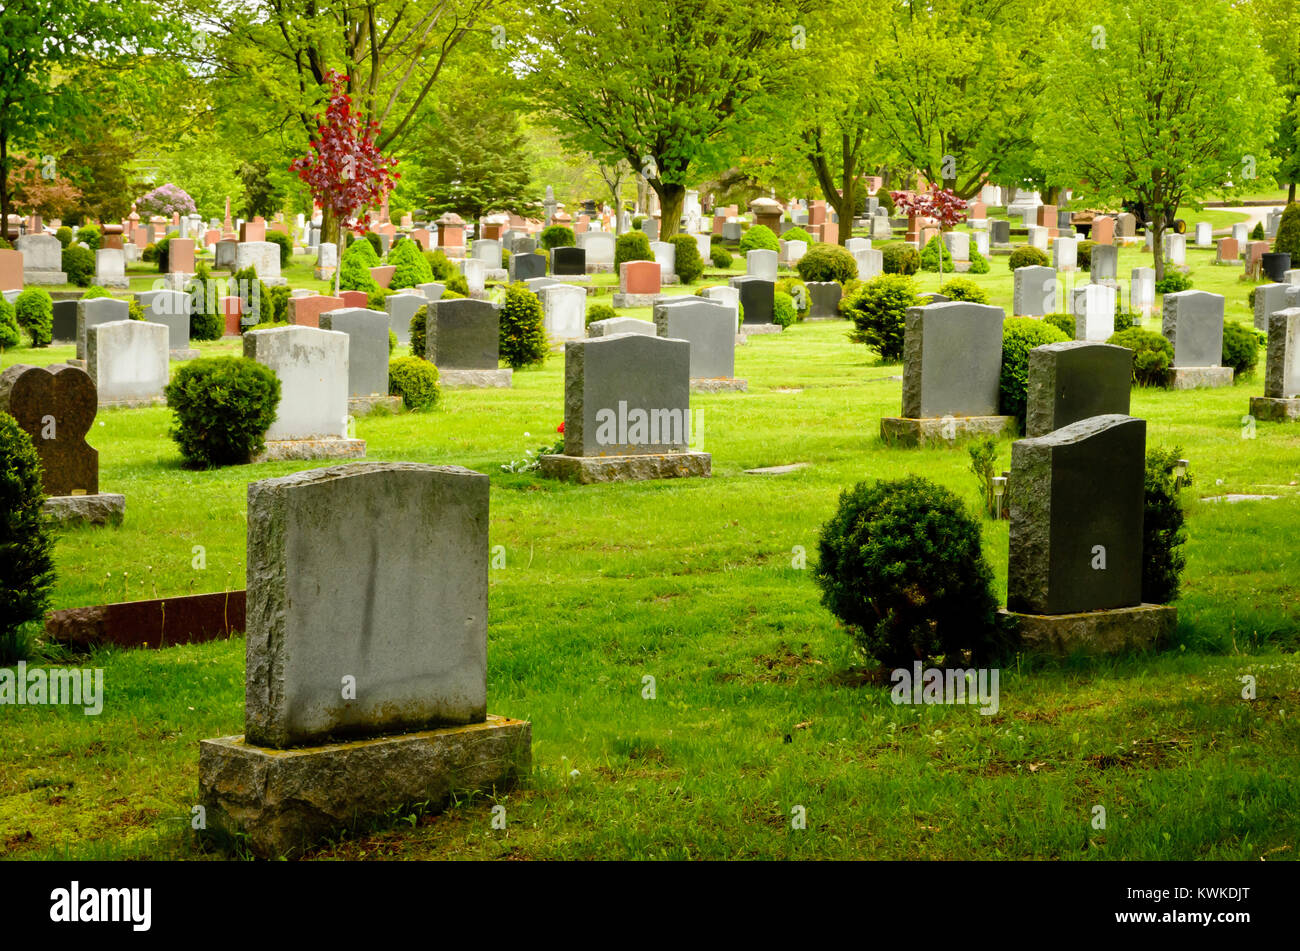 Cemetery showing grave stone stretched out into the distance with trees and shrubs around the grave stones - Stock Image